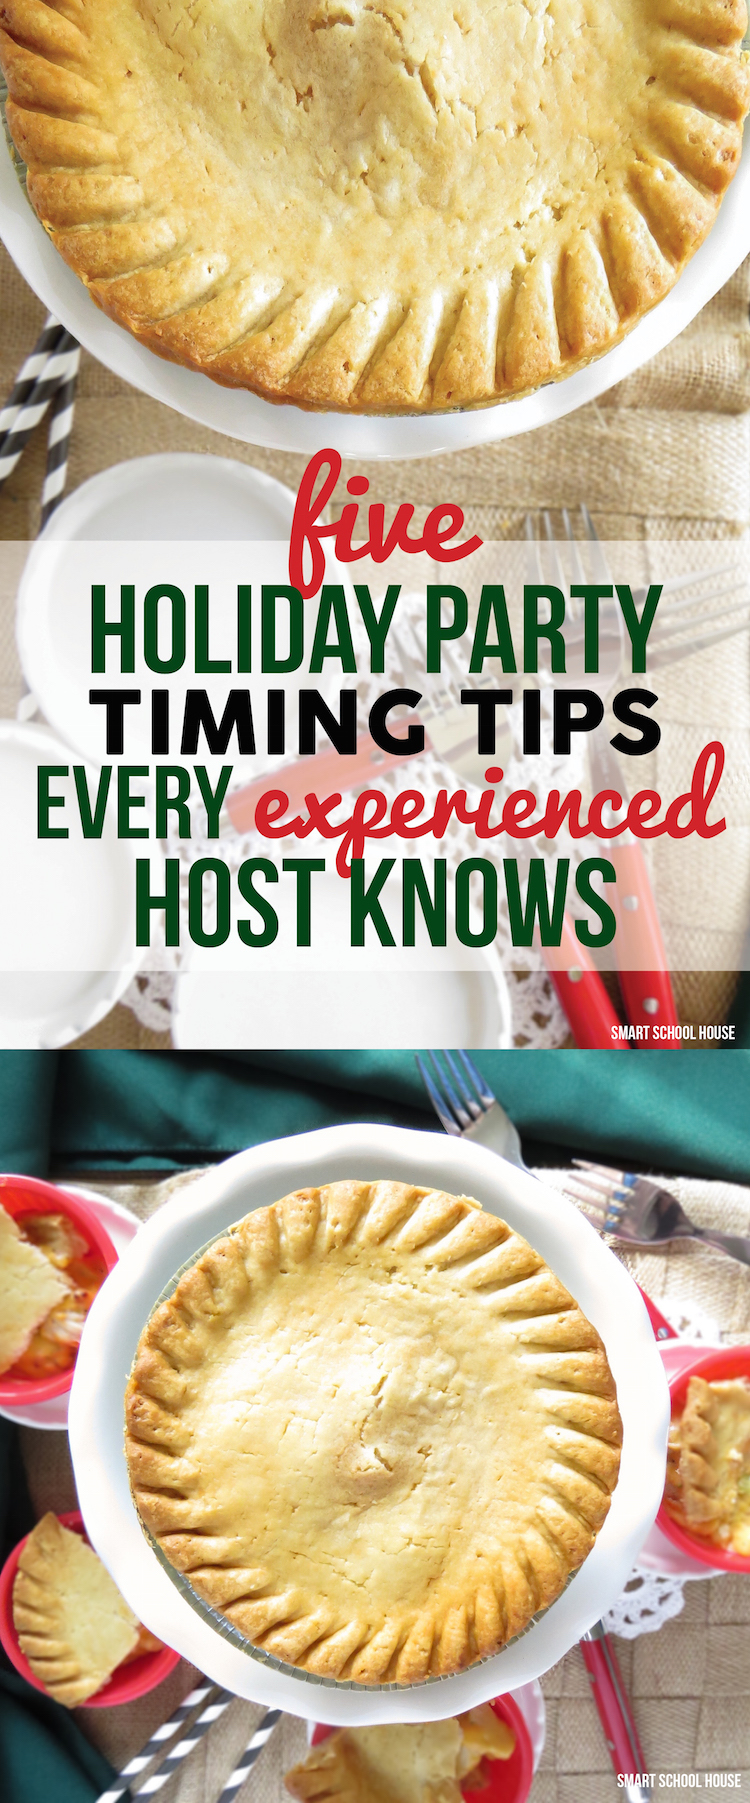 5 Holiday Party Timing Tips Every Experienced Host Knows. Great helpful ideas for hosting a party in your home this season!